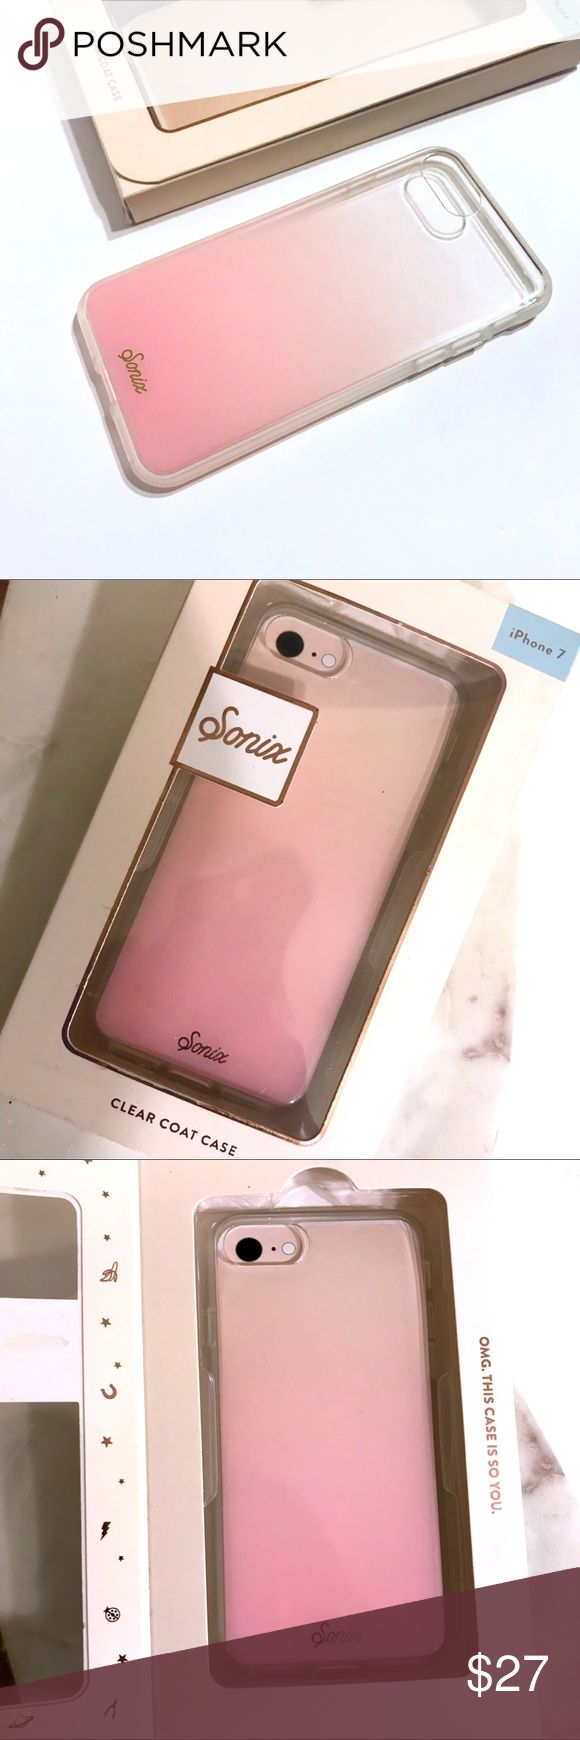 🖤 SONIX iPhone 7 / 8 case Brand new. Never used. Was a gift but I have 7plus so can't use it. 😭 Designed to perfectly fit all iPhone 7 / iPhone 8 Military Drop Test Certified (UL) - Ruggedized 360 ̊ form factor provides complete protection around all sides of the phone Slim and lightweight with anti-scratch UV coating, raised shock absorbent rubber sides with easy press-protected buttons for streamlined usability Fashion forward, thoughtfully designed, and precision-crafted SONIX…